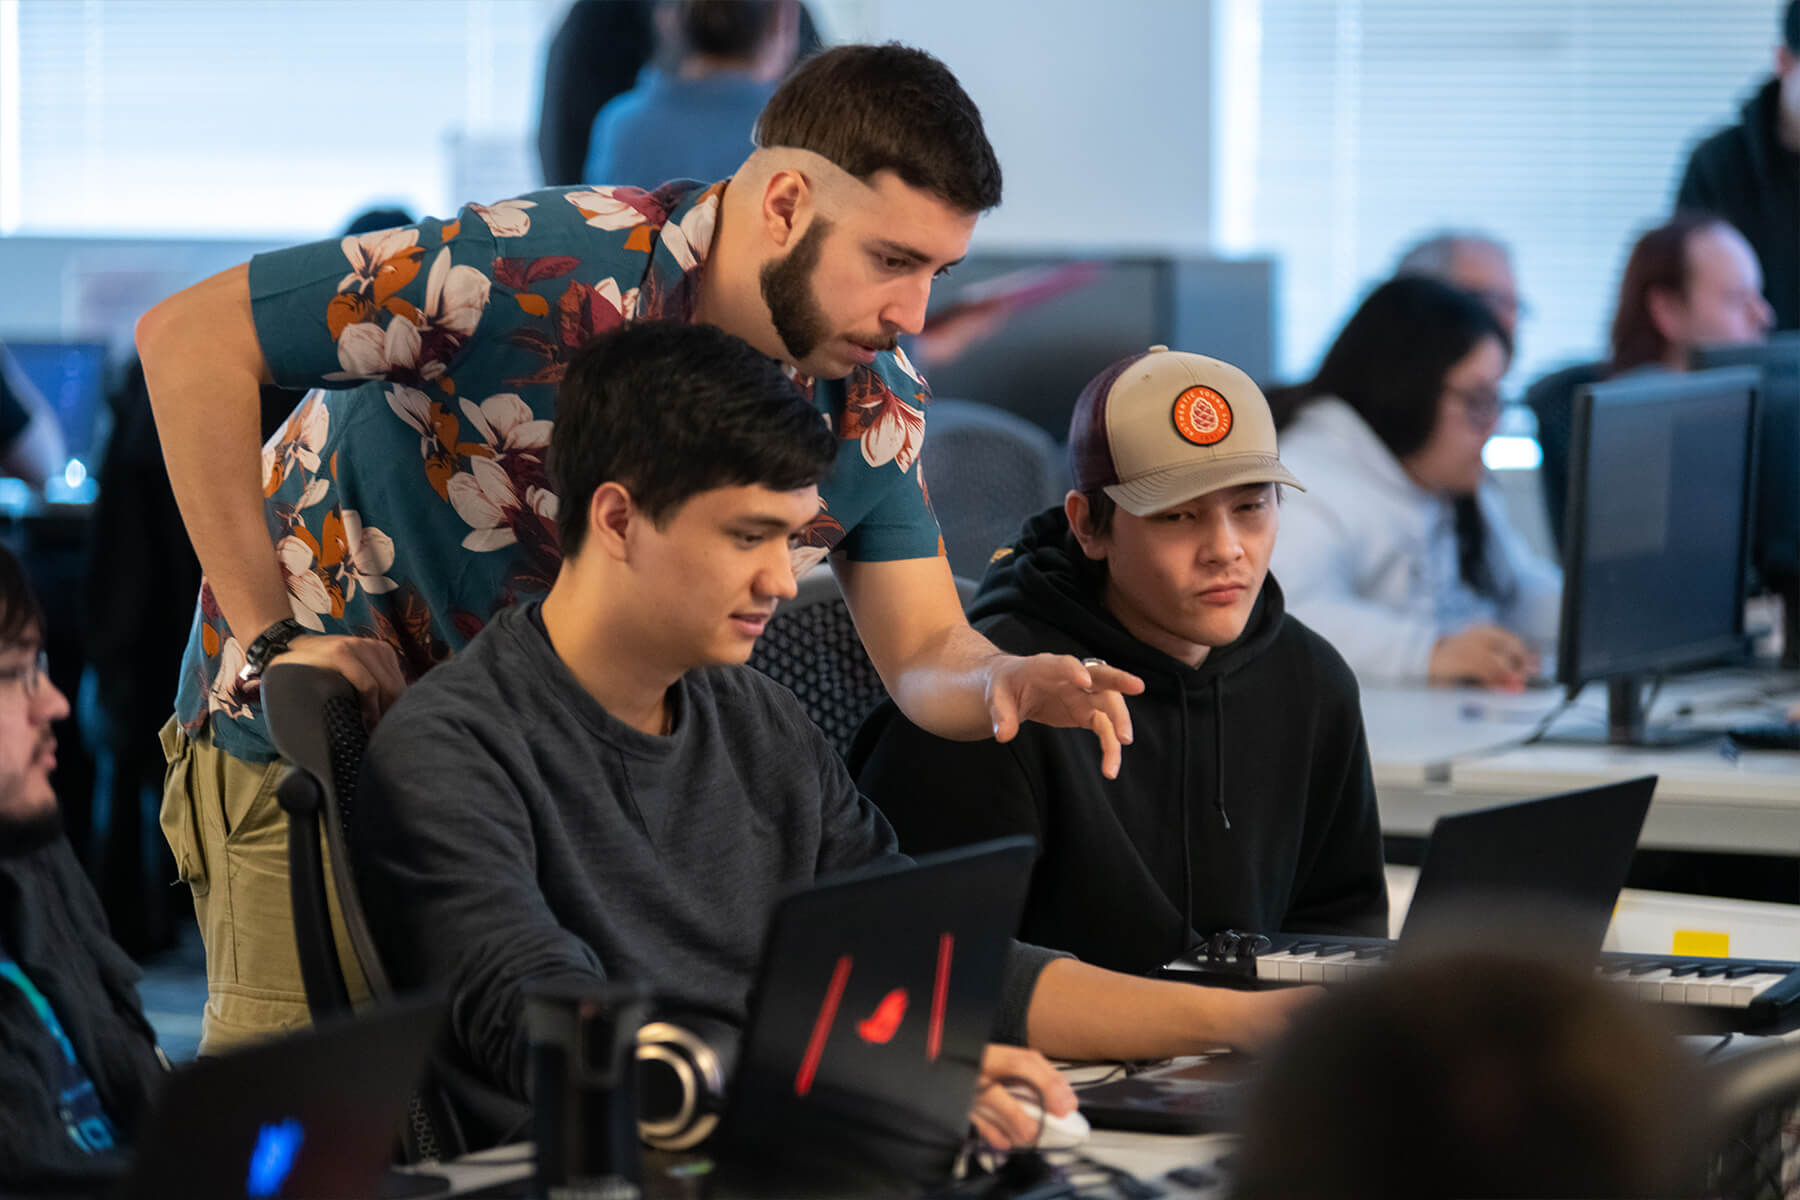 A student in a Hawaiian shirt gestures towards his teammate's computer screen as another team member looks on.